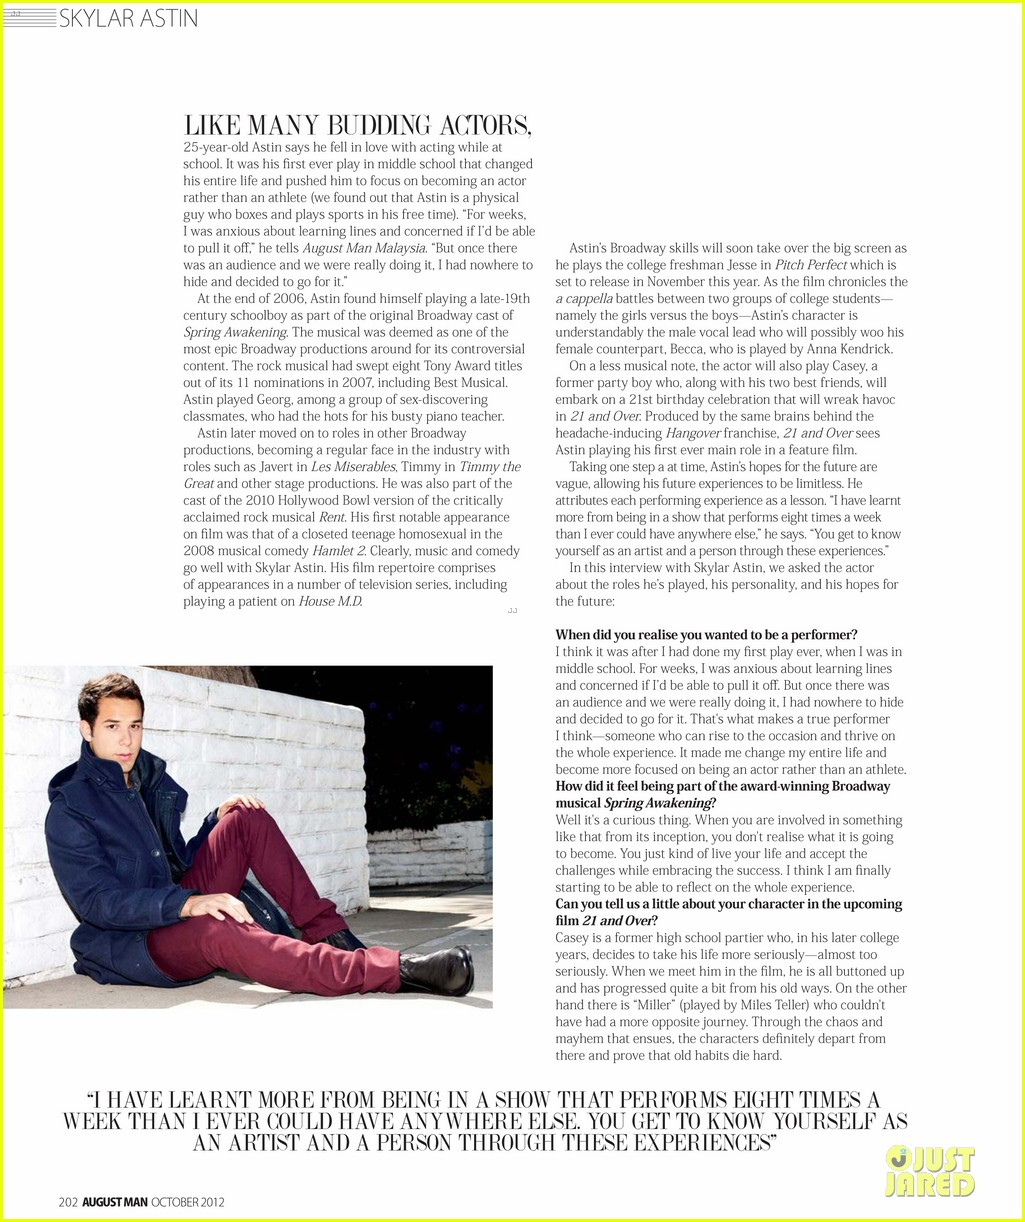 skylar astin august man feature  10